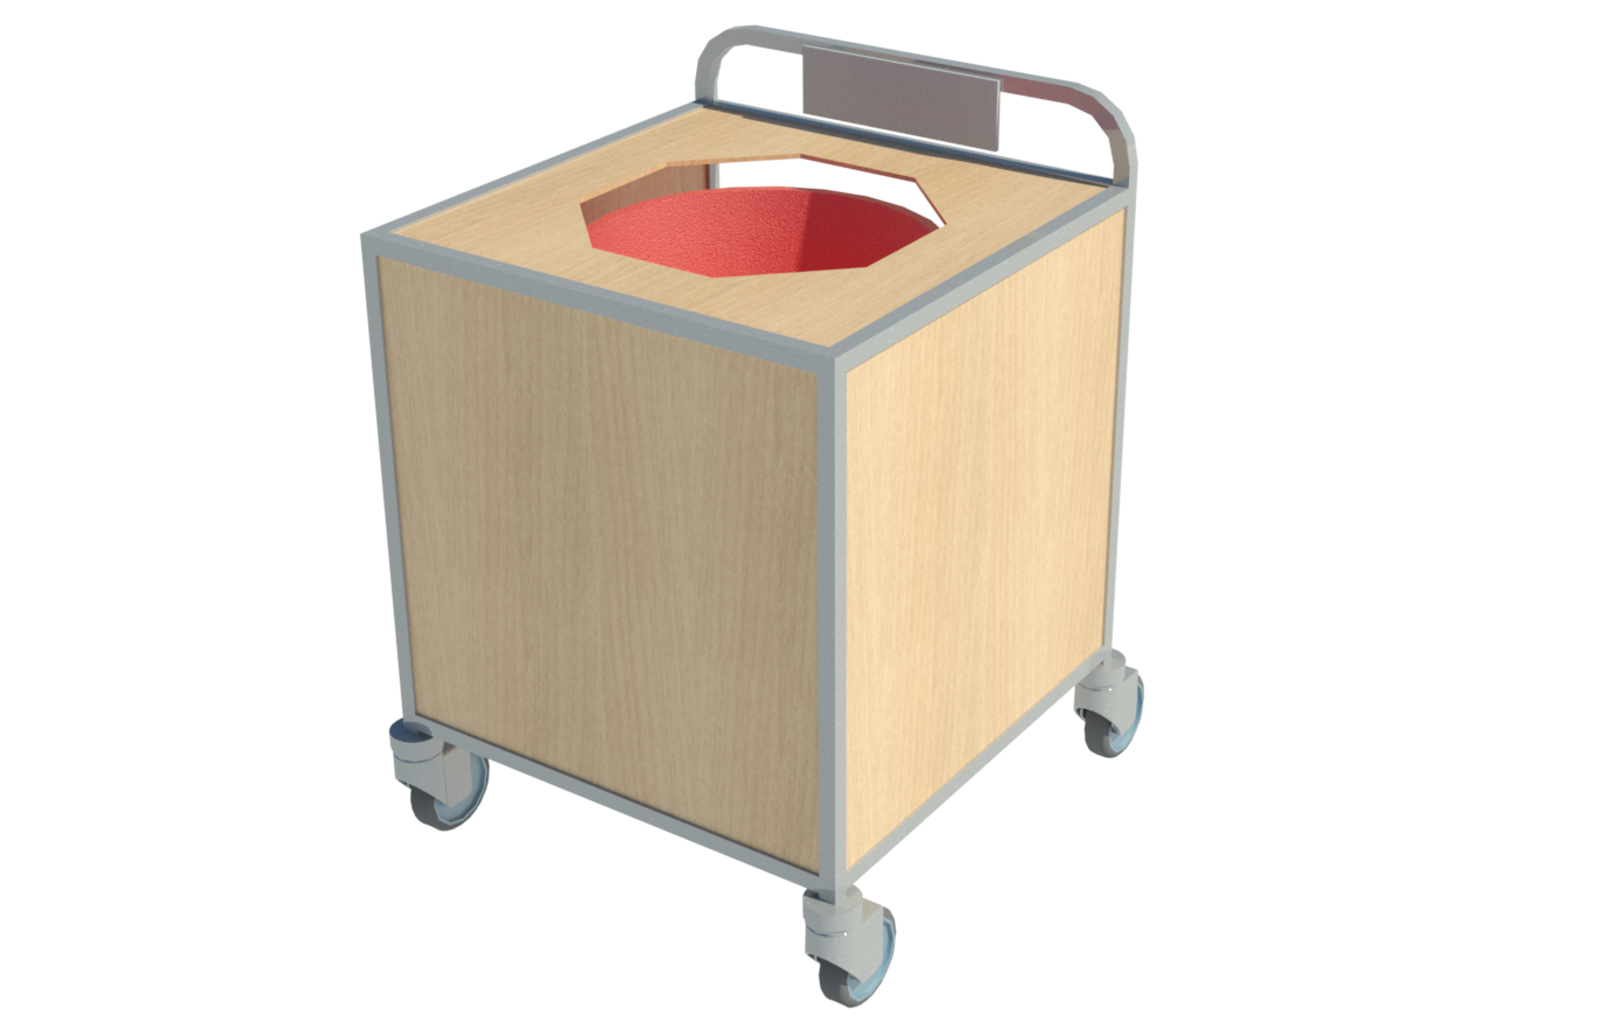 Revit family of food waste trolley from Health and Care.